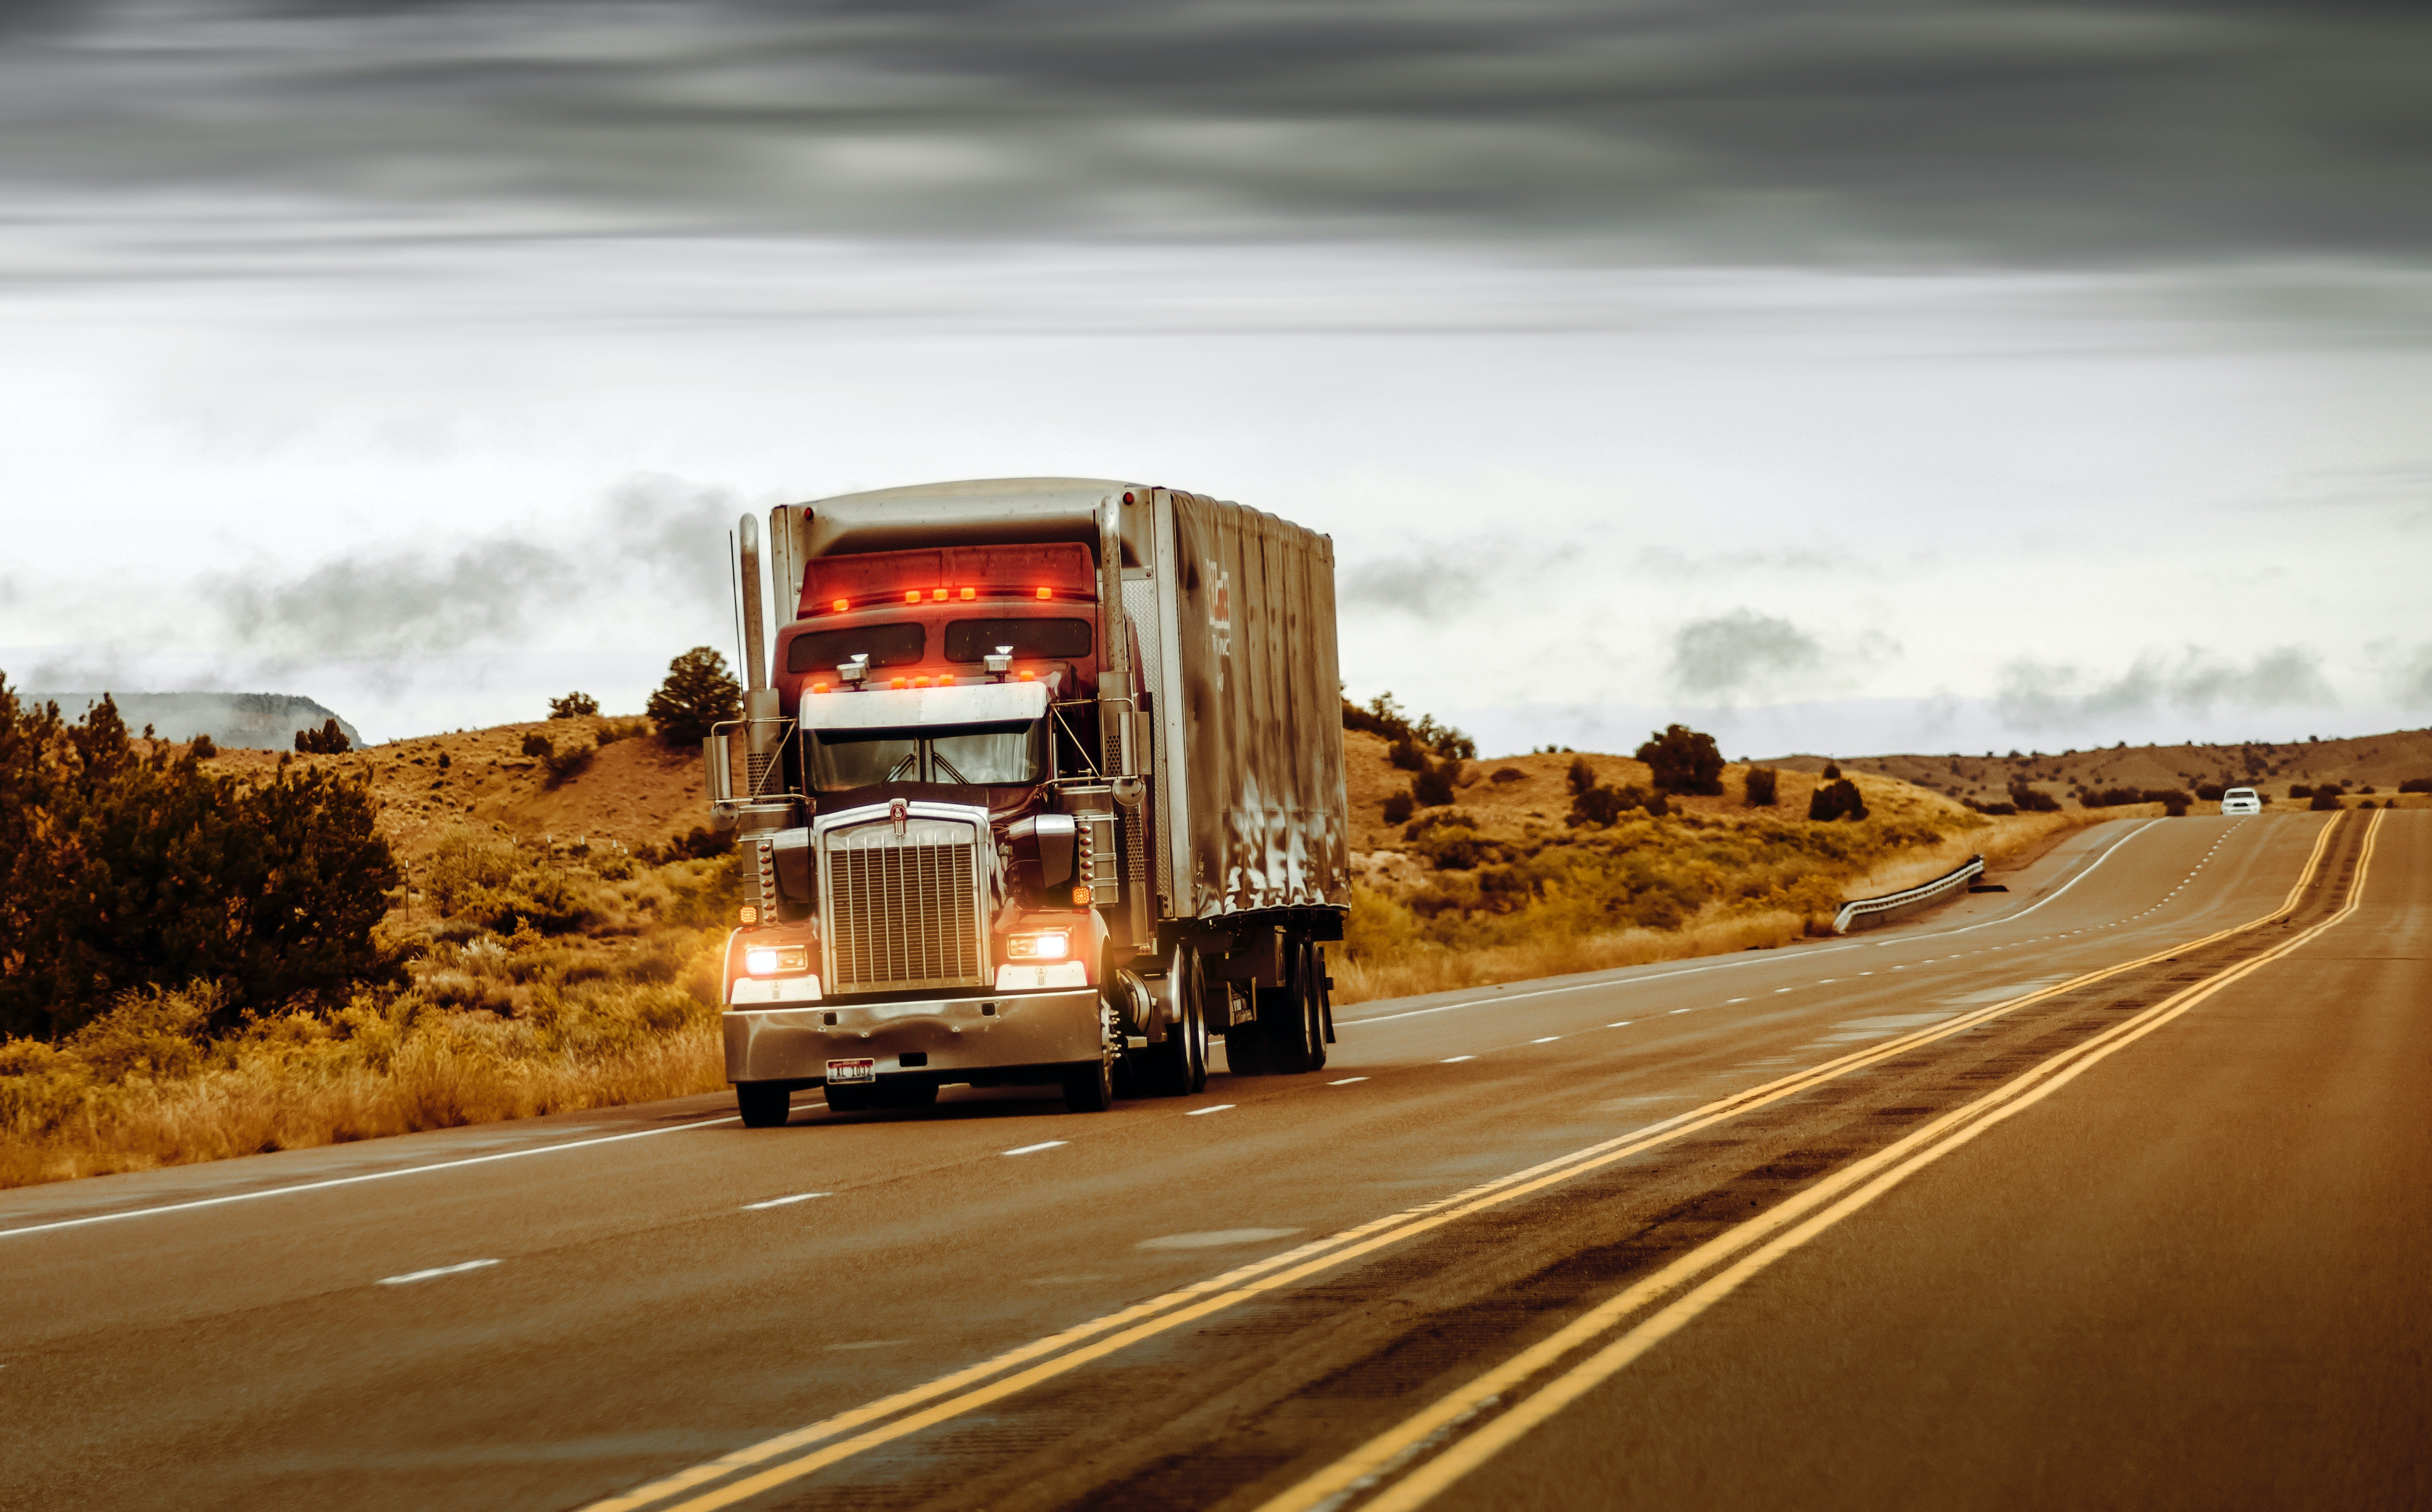 Pictured - An image of a white and brown truck on the road | Source: Pexels